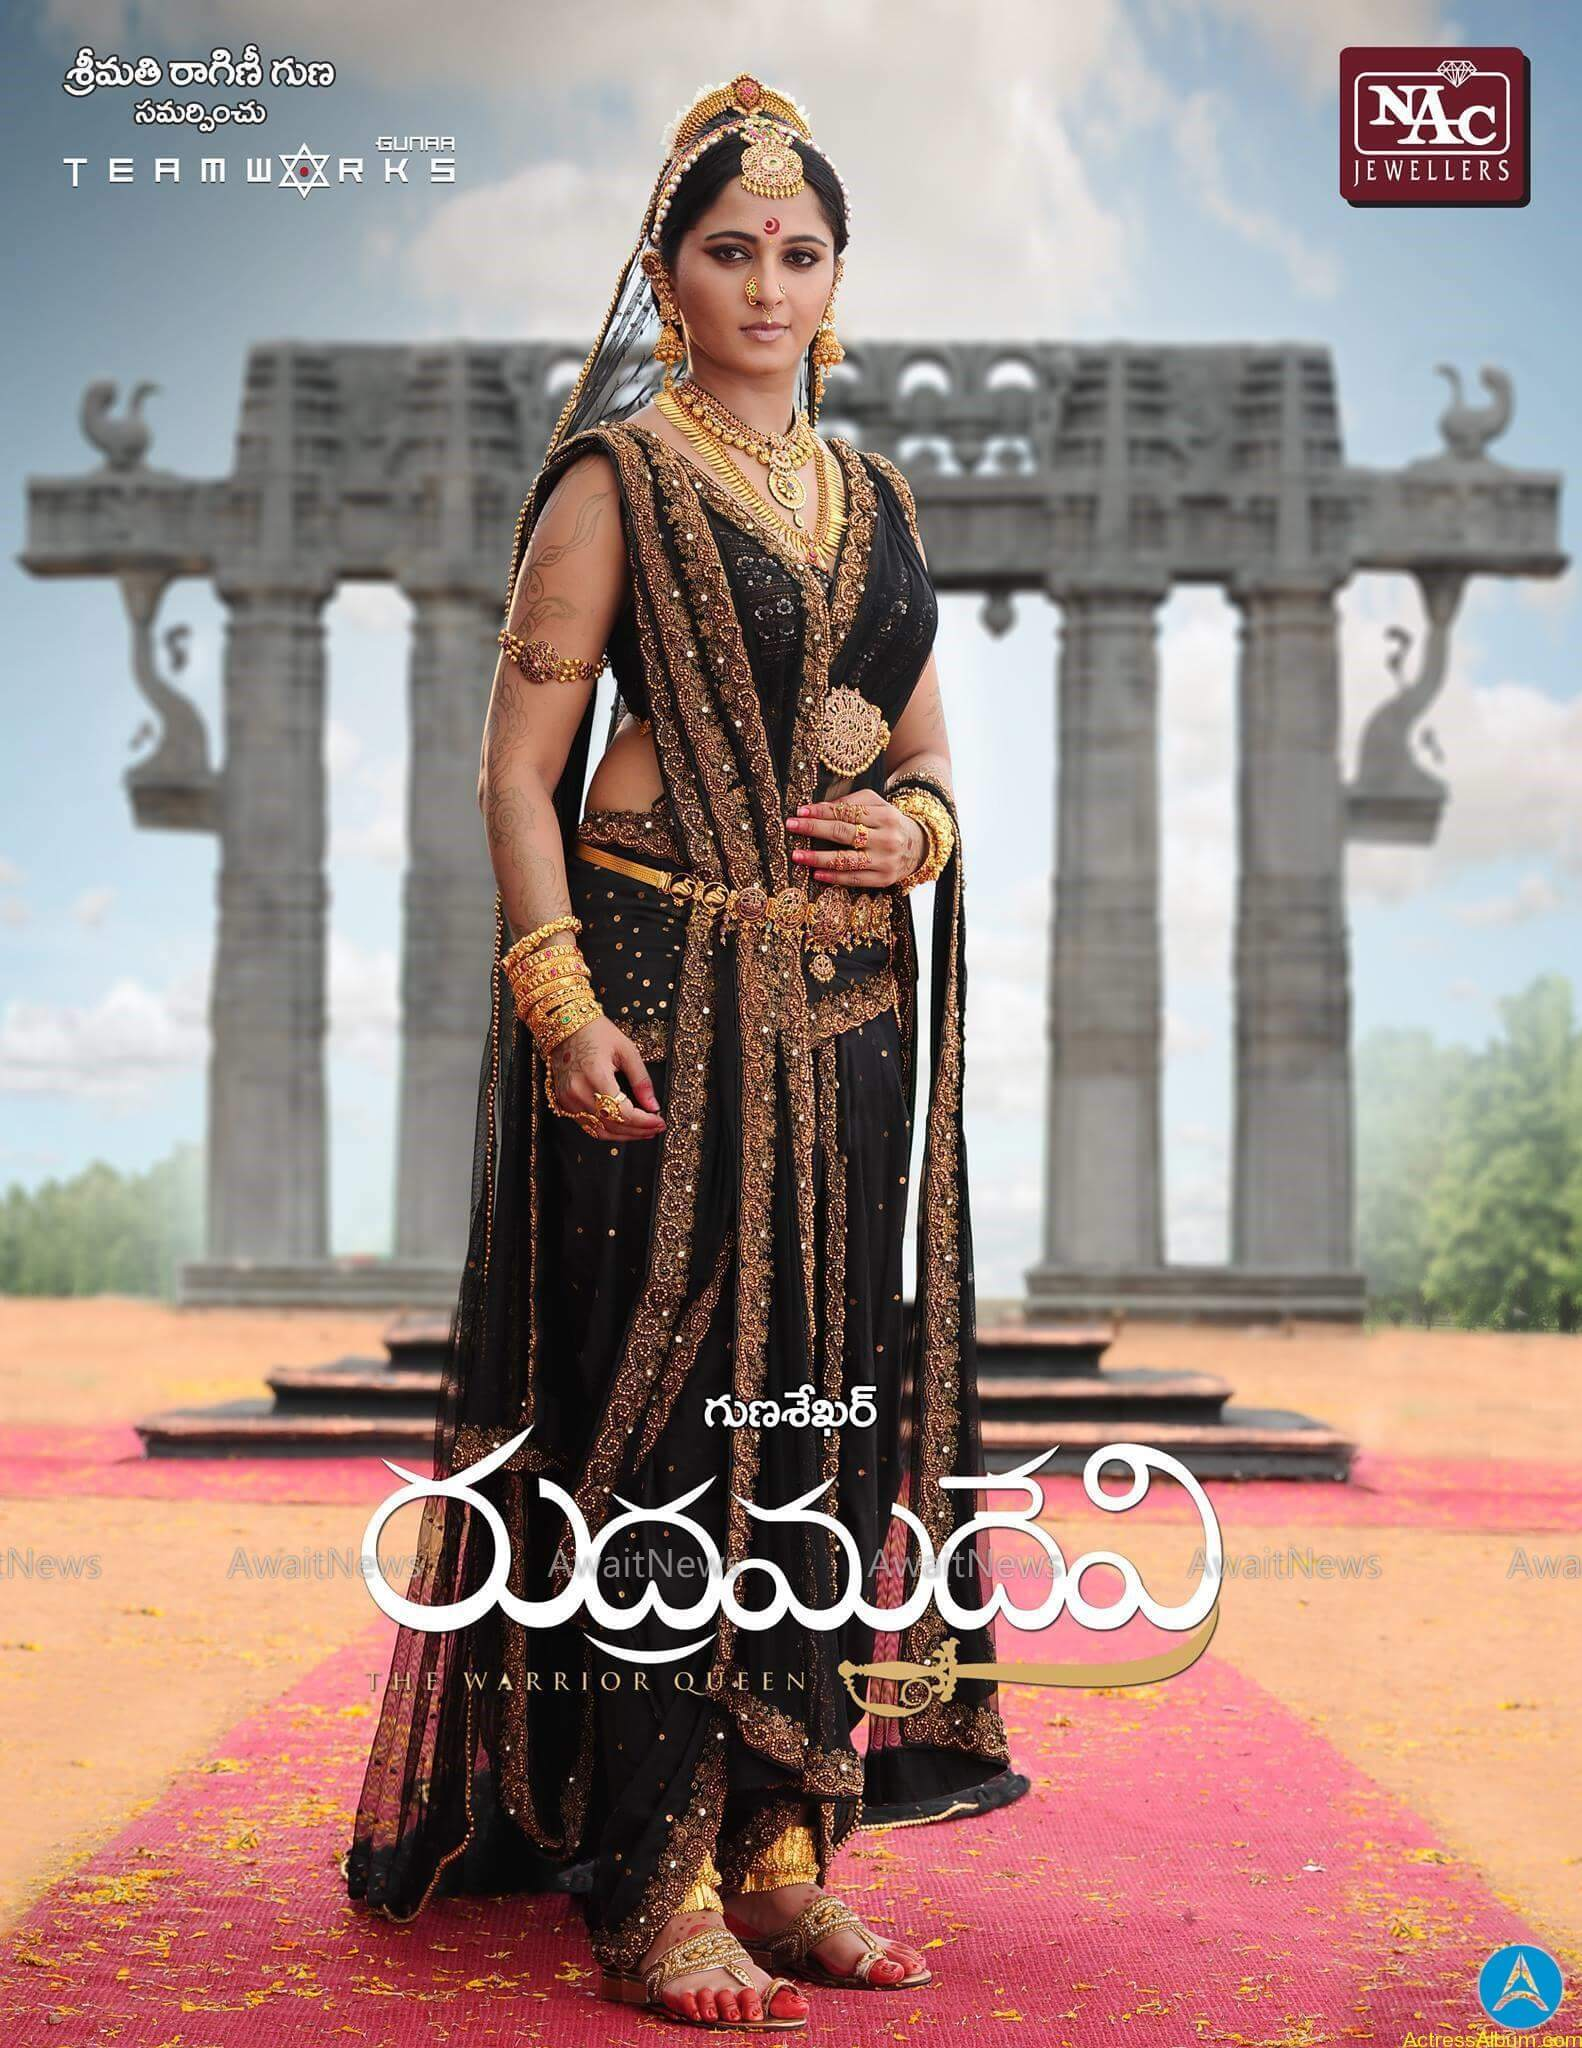 Online-Leakage-Of-Rudramadevi-Songs